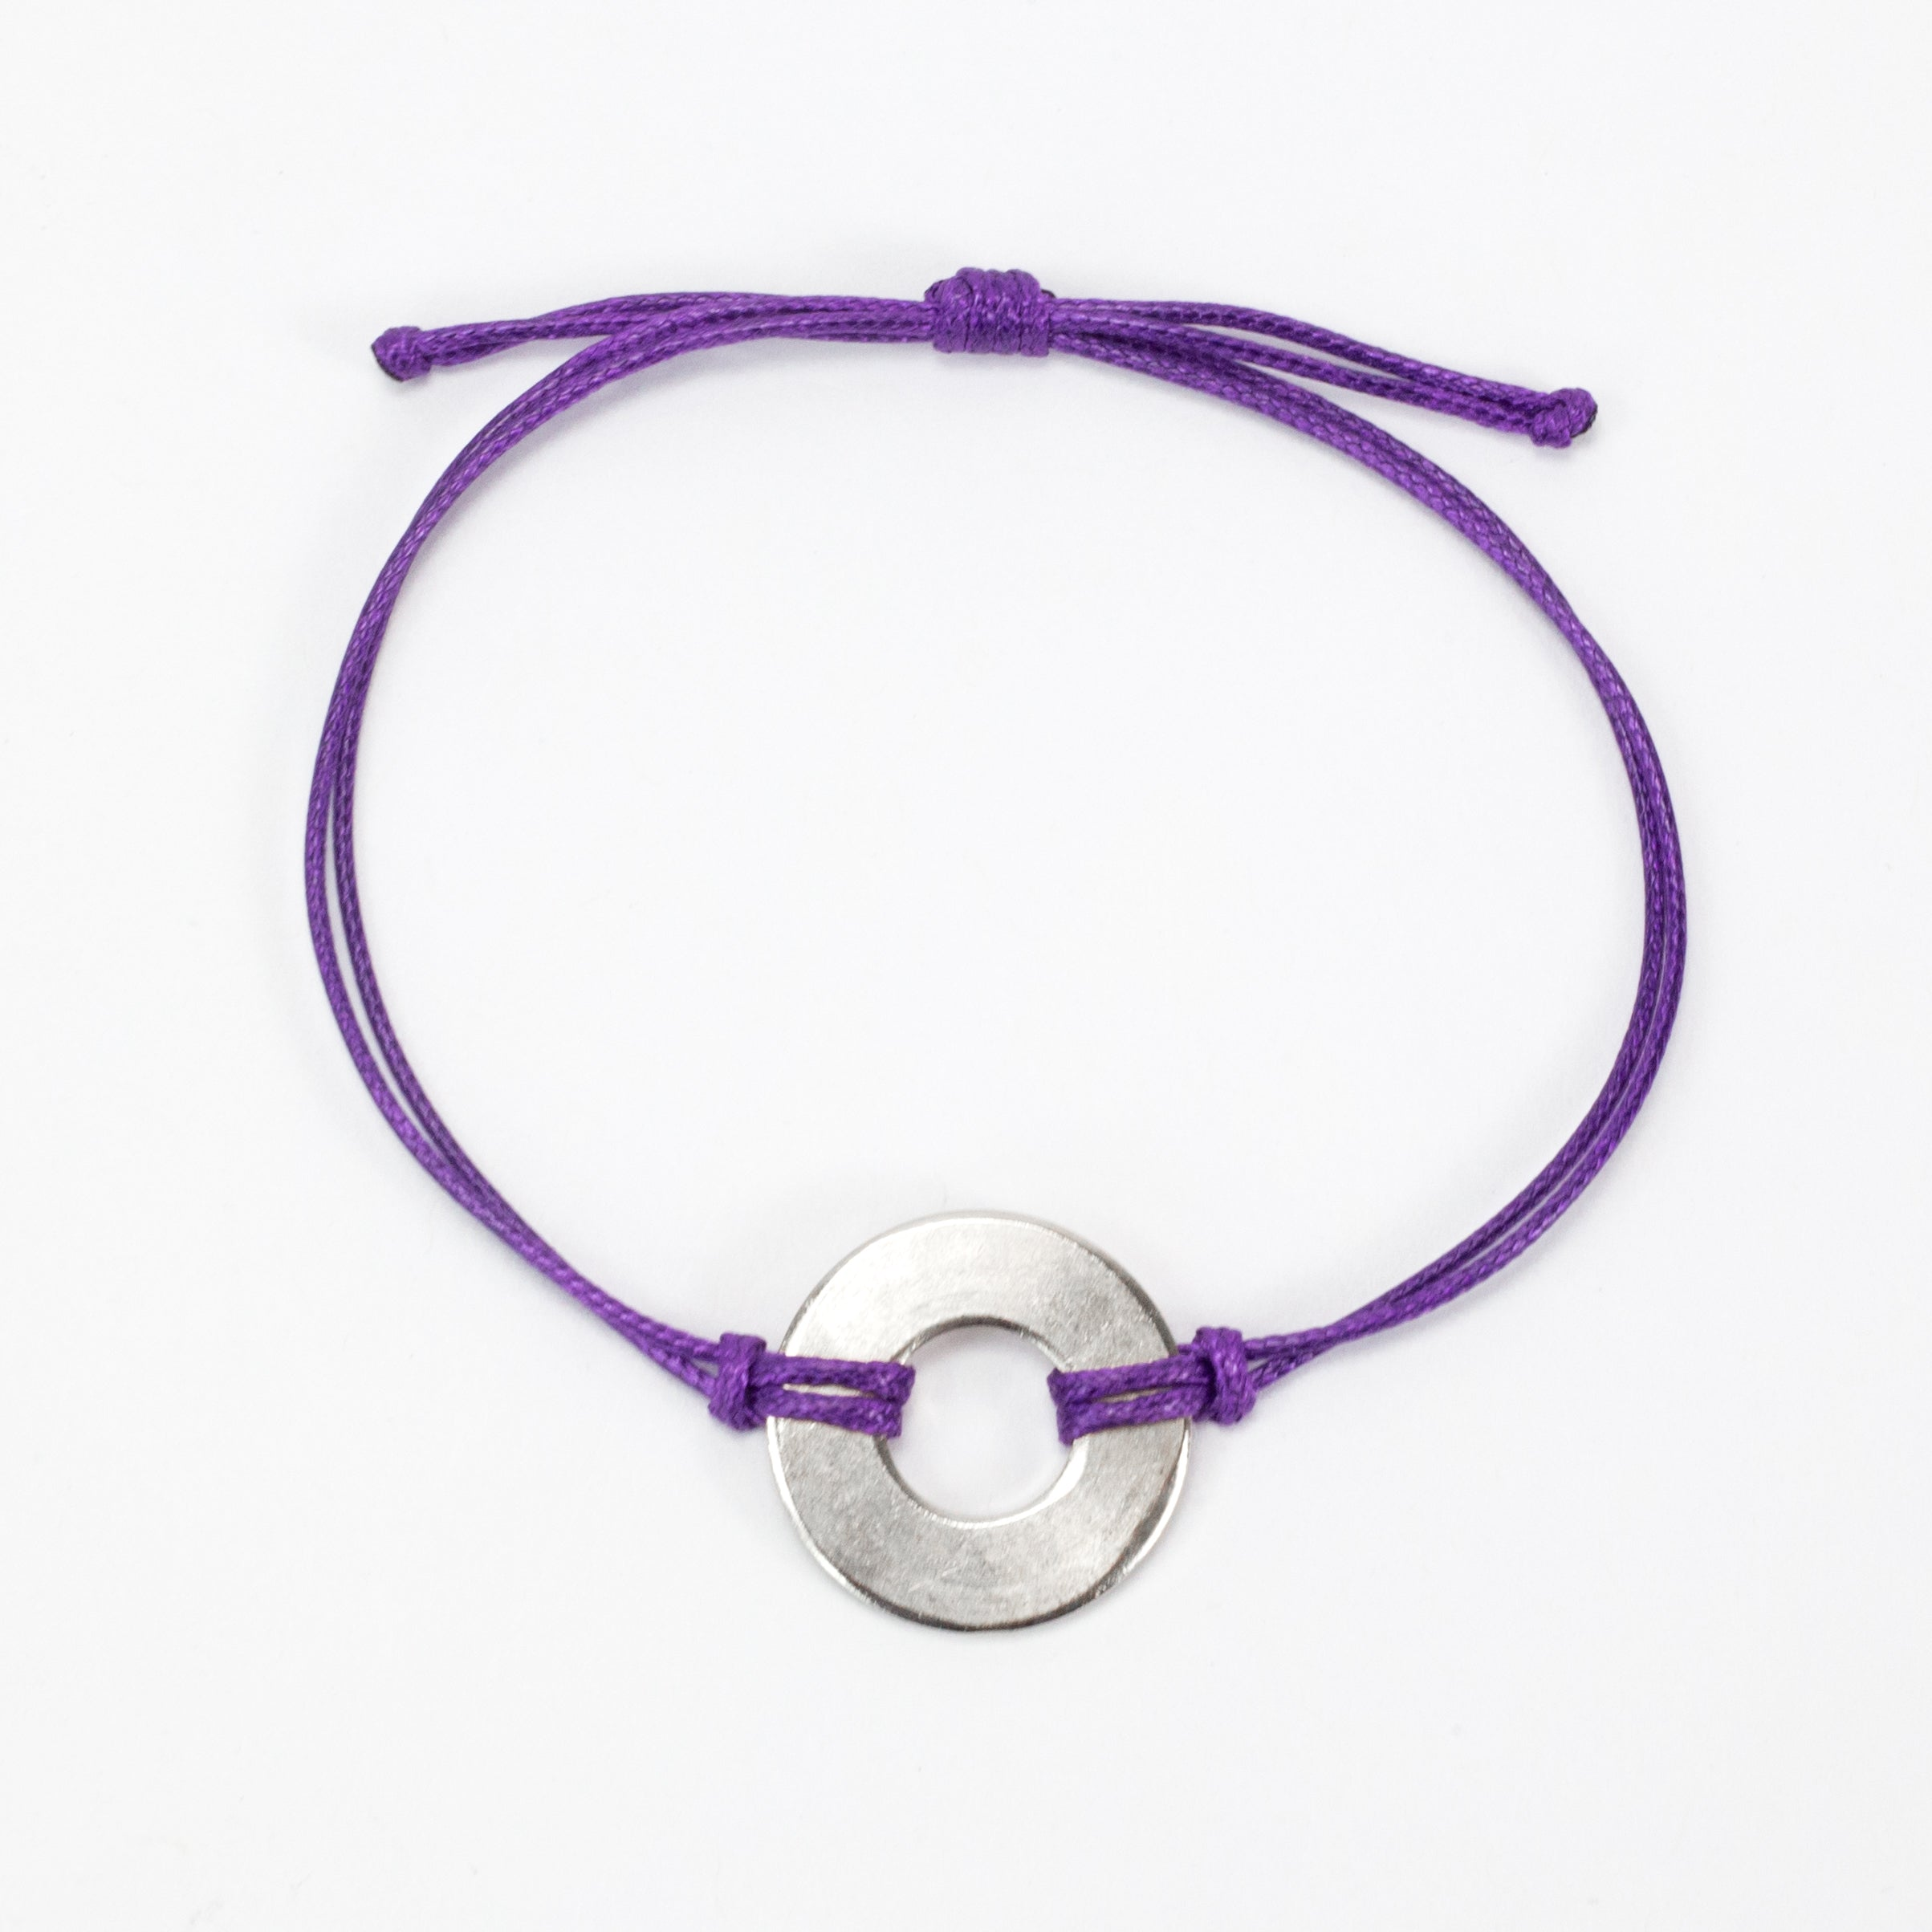 MyIntent Refill Classic Bracelet Purple String with Nickel token